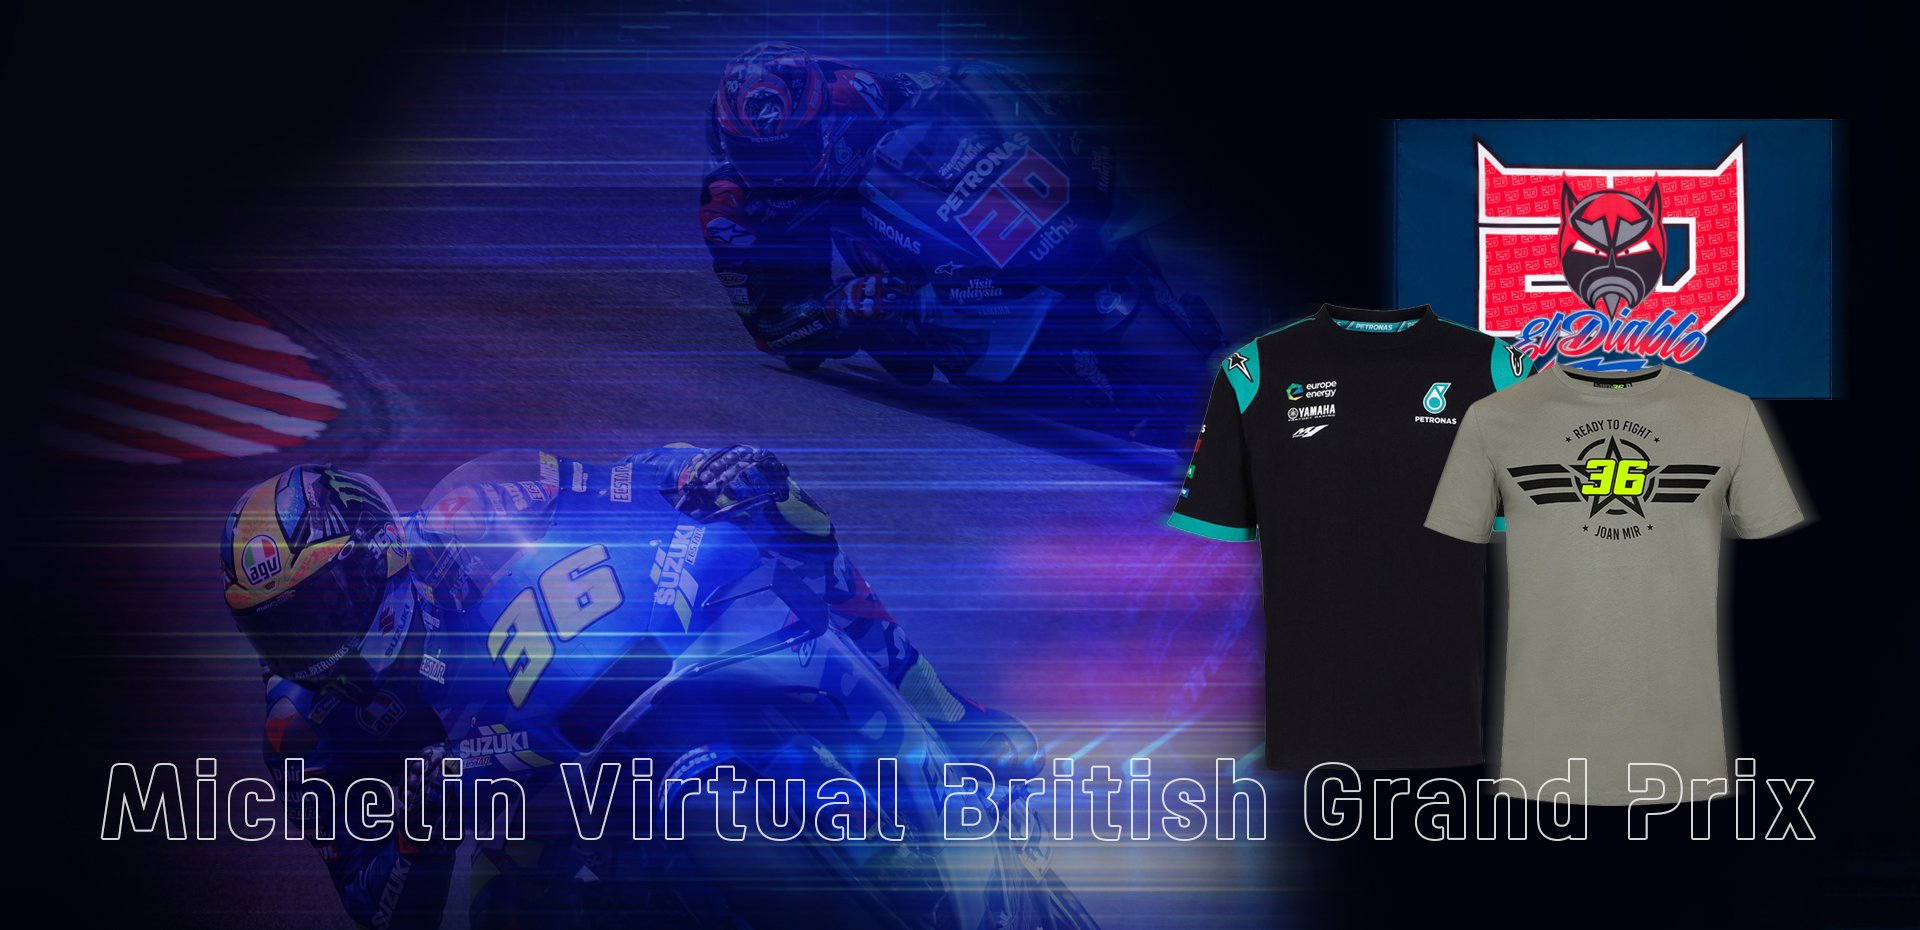 Michelin Virtual British Grand Prix